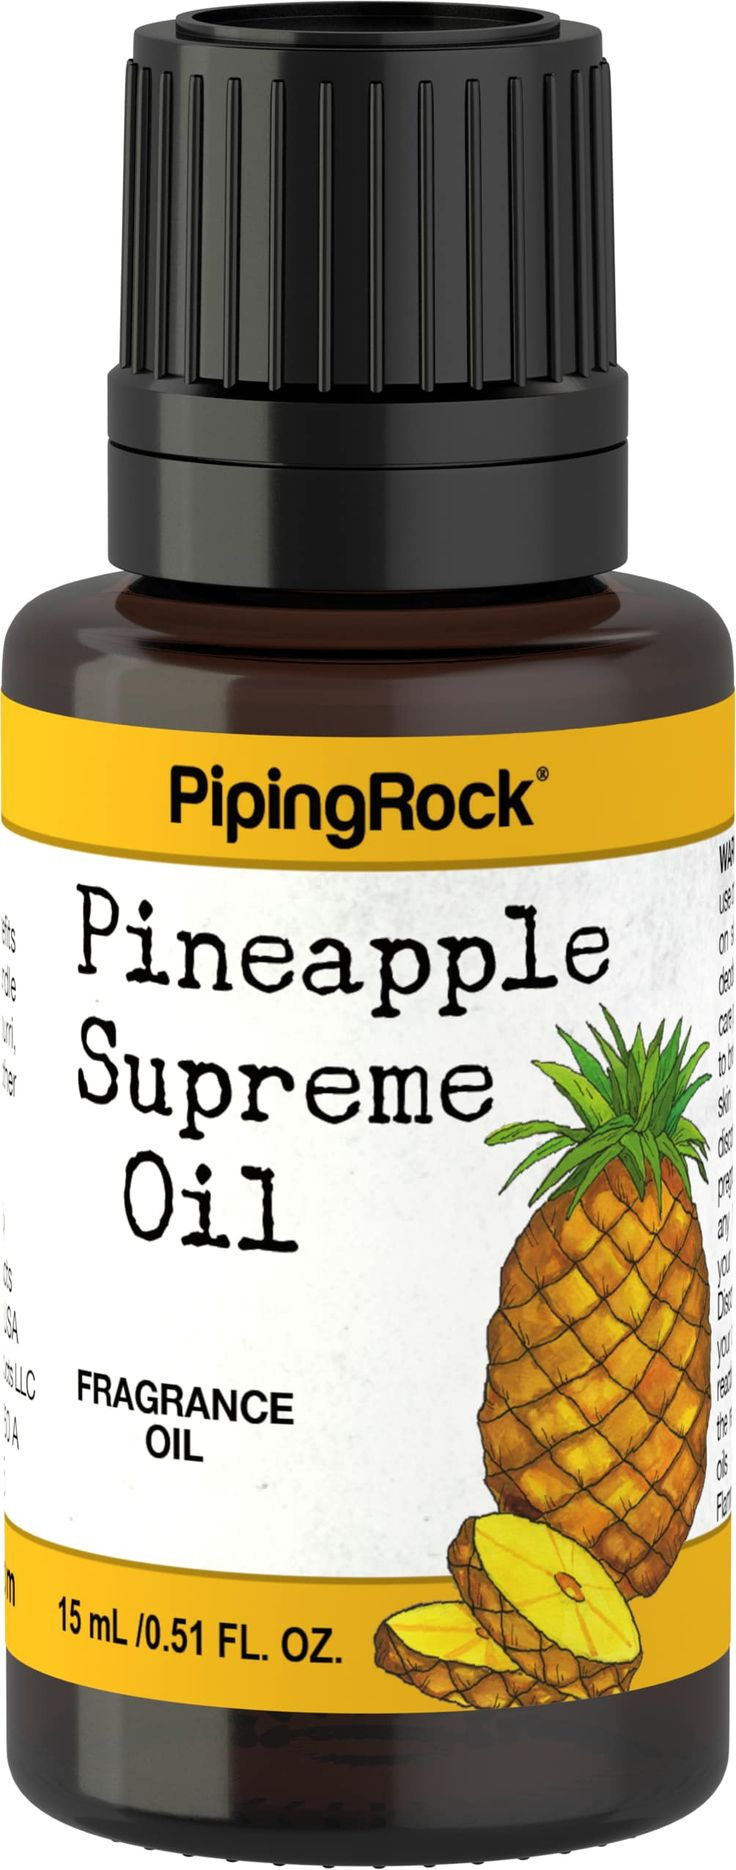 Pineapple Fragrance Oil | Piping Rock Health Products